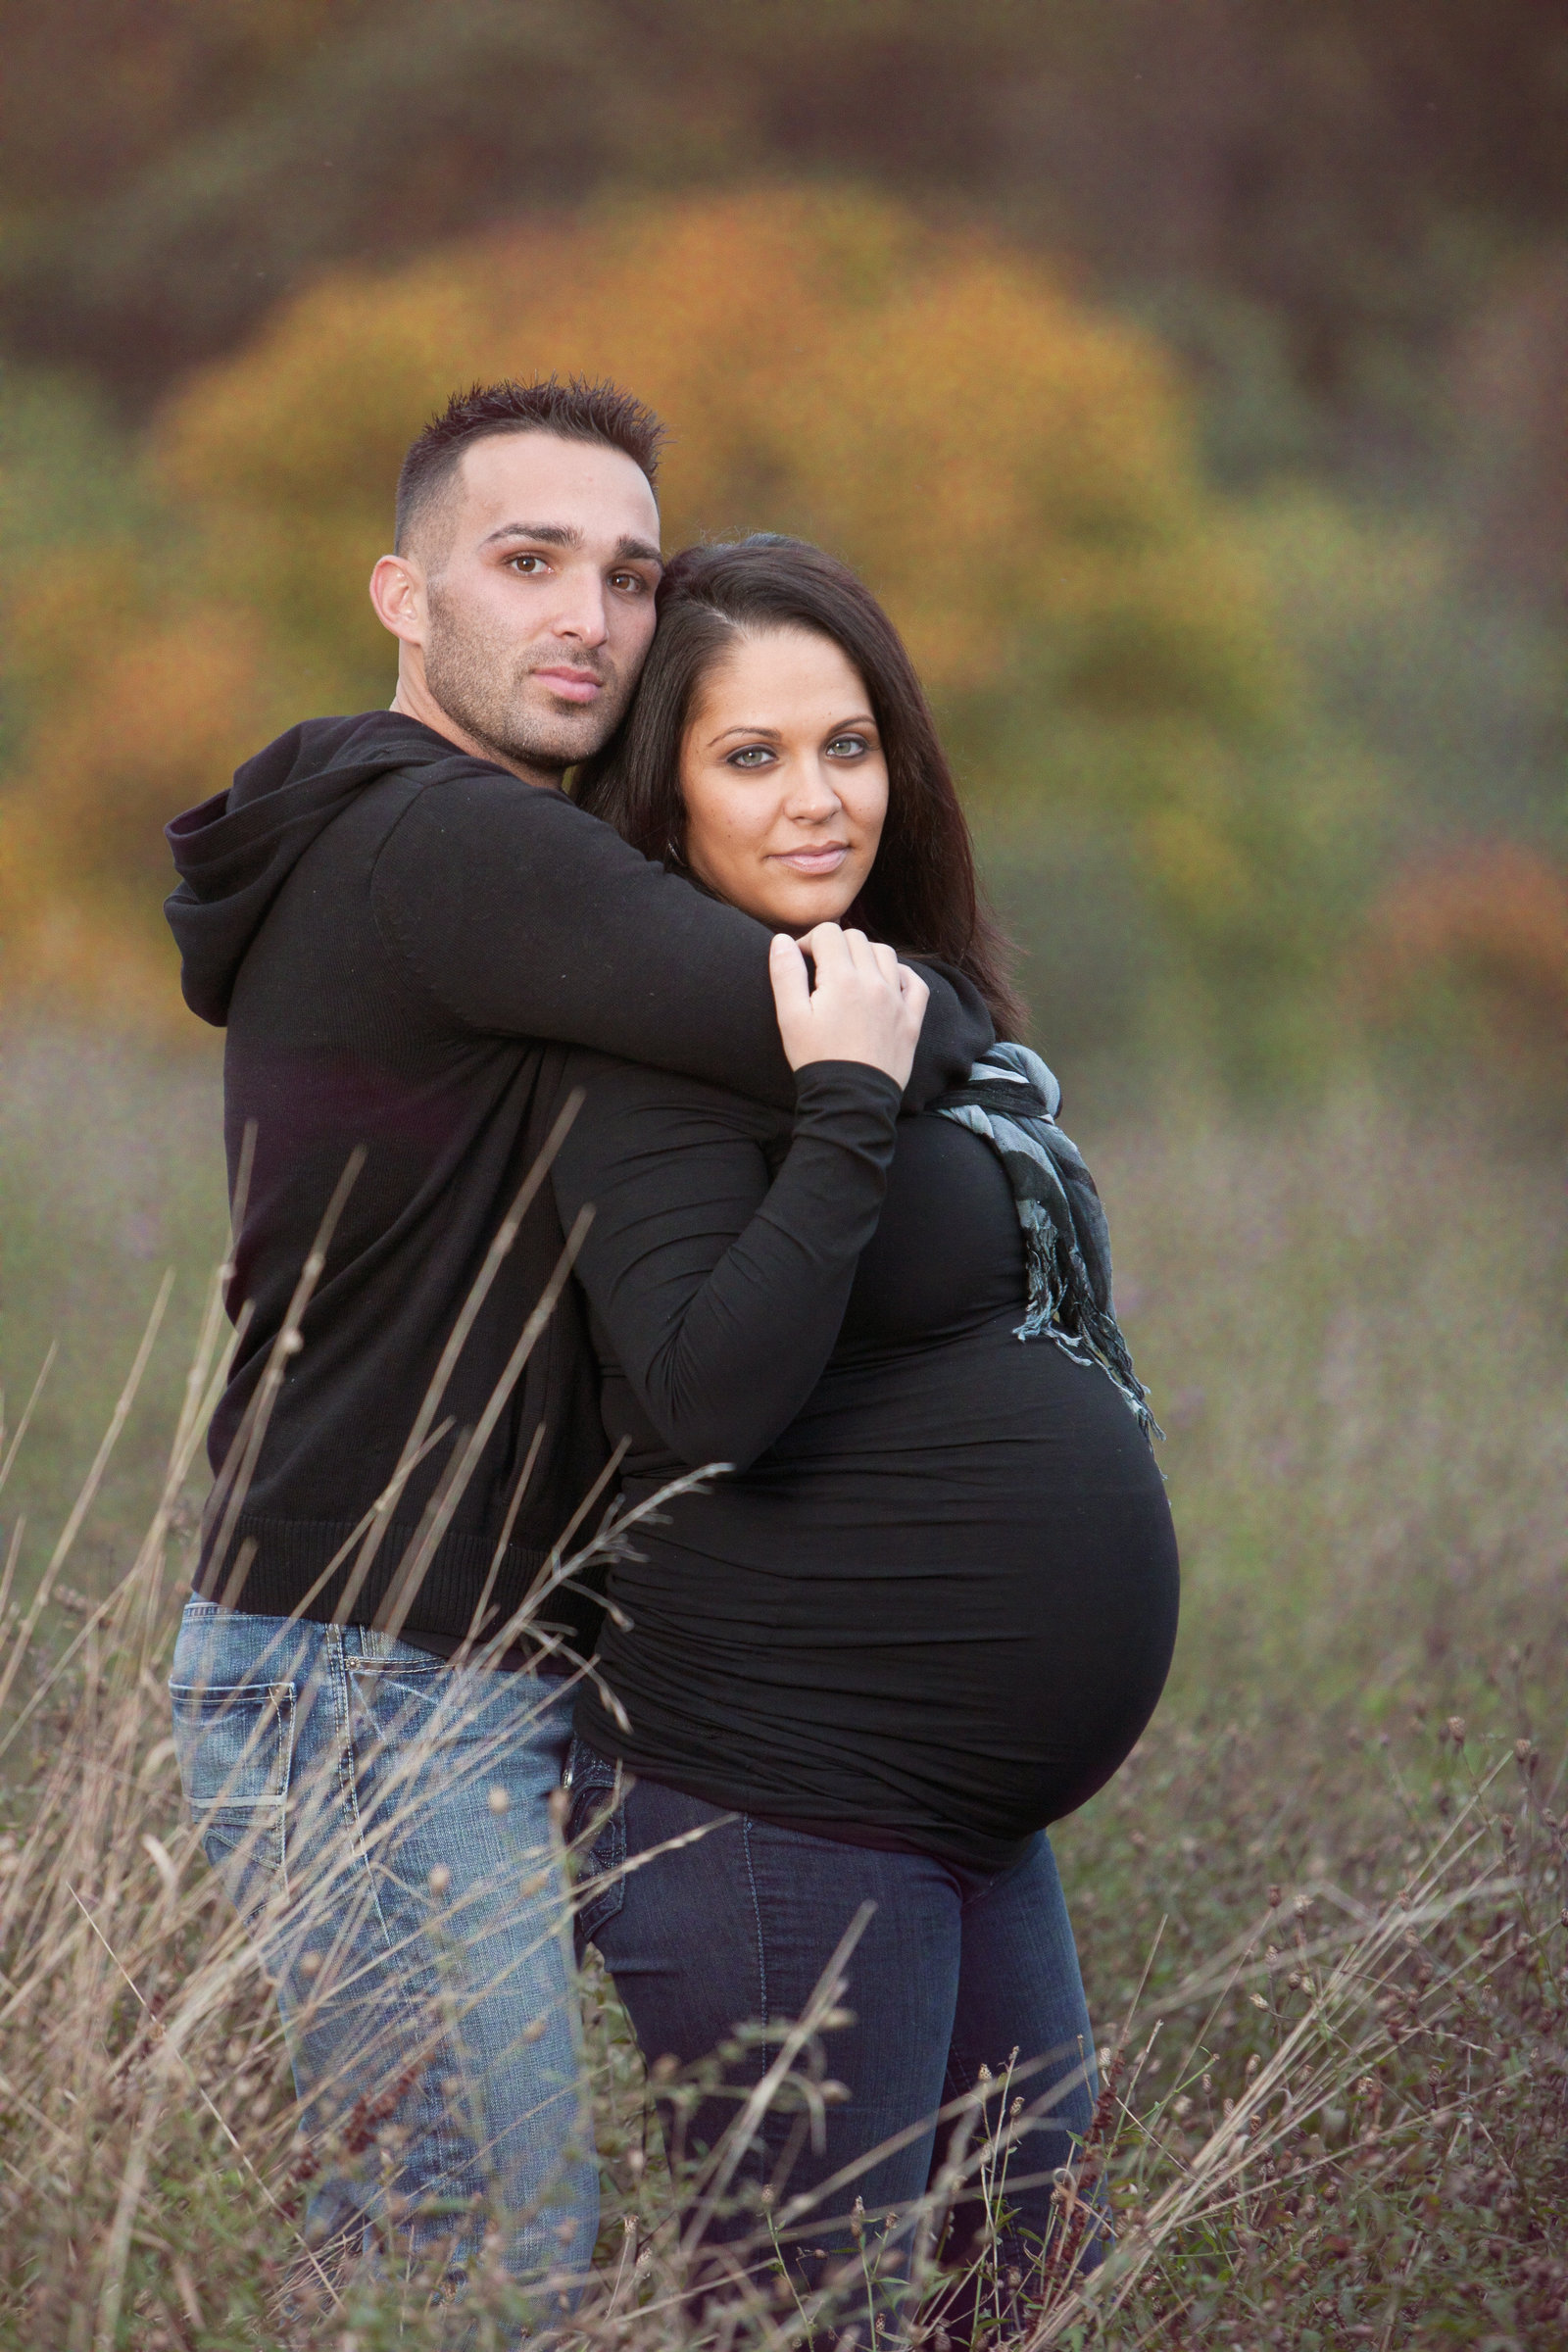 casual outdoor maternity photography in the hudson valley in the fall by Autumn Photography, Hudson Valley professional photographer